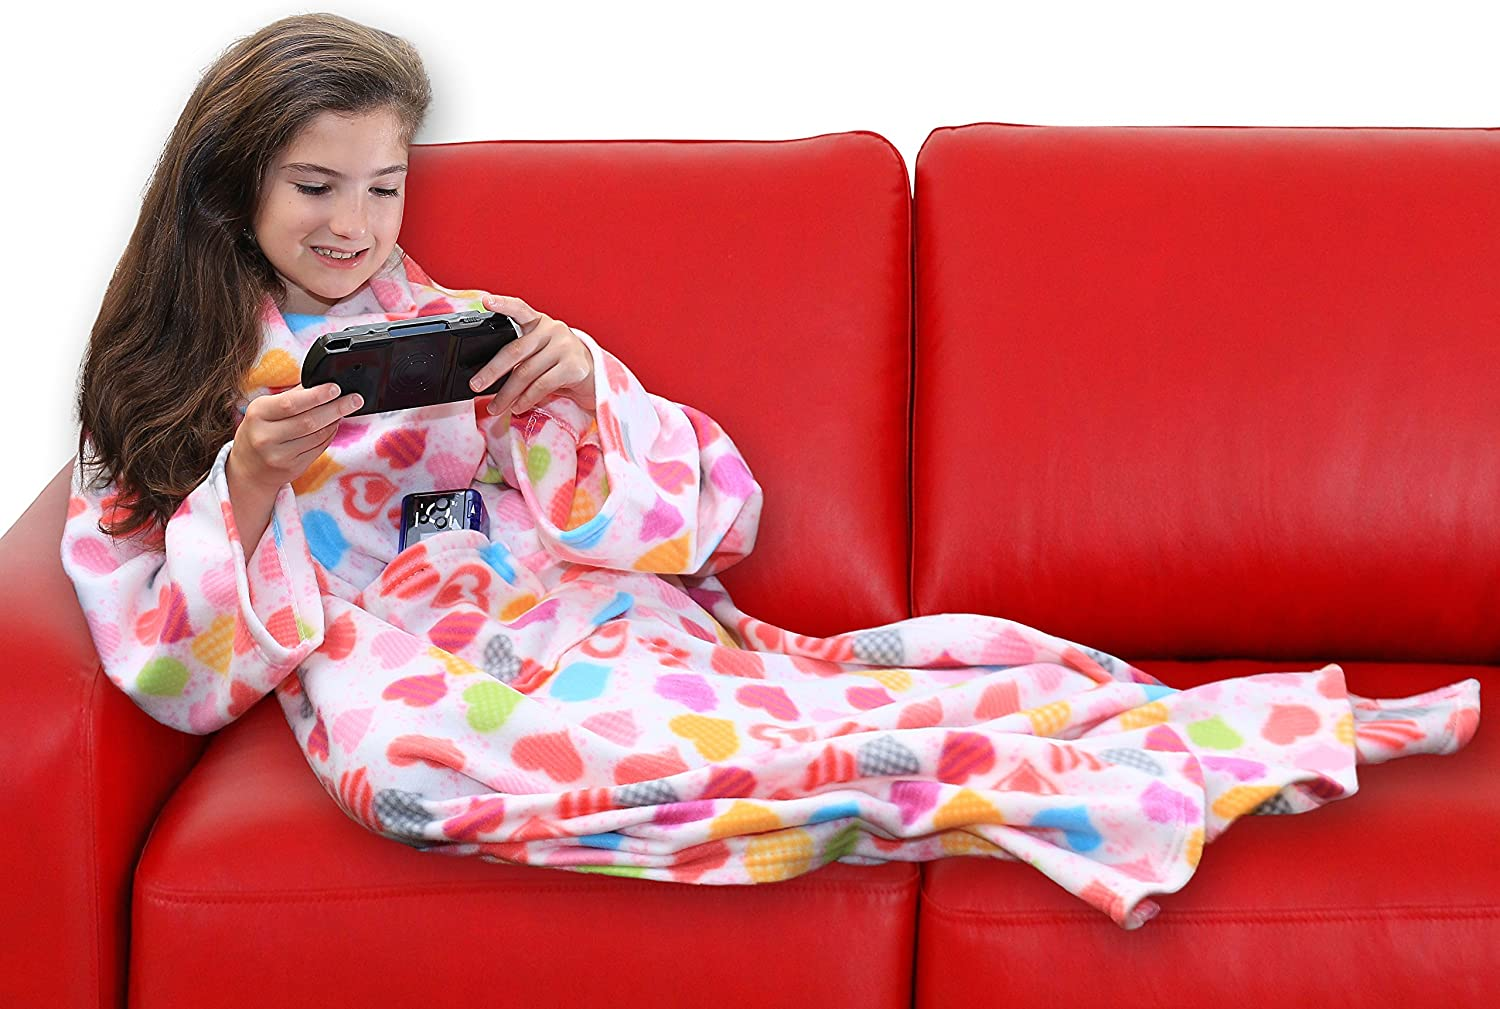 Luxuriously Soft /& Non-Irritating Fabric Hearts DG SPORTS Wearable Fleece Blanket for Kids with Sleeves and Pockets Machine Washable Cute Snuggle Couch Throw Cozy Cover for Boys and Girls